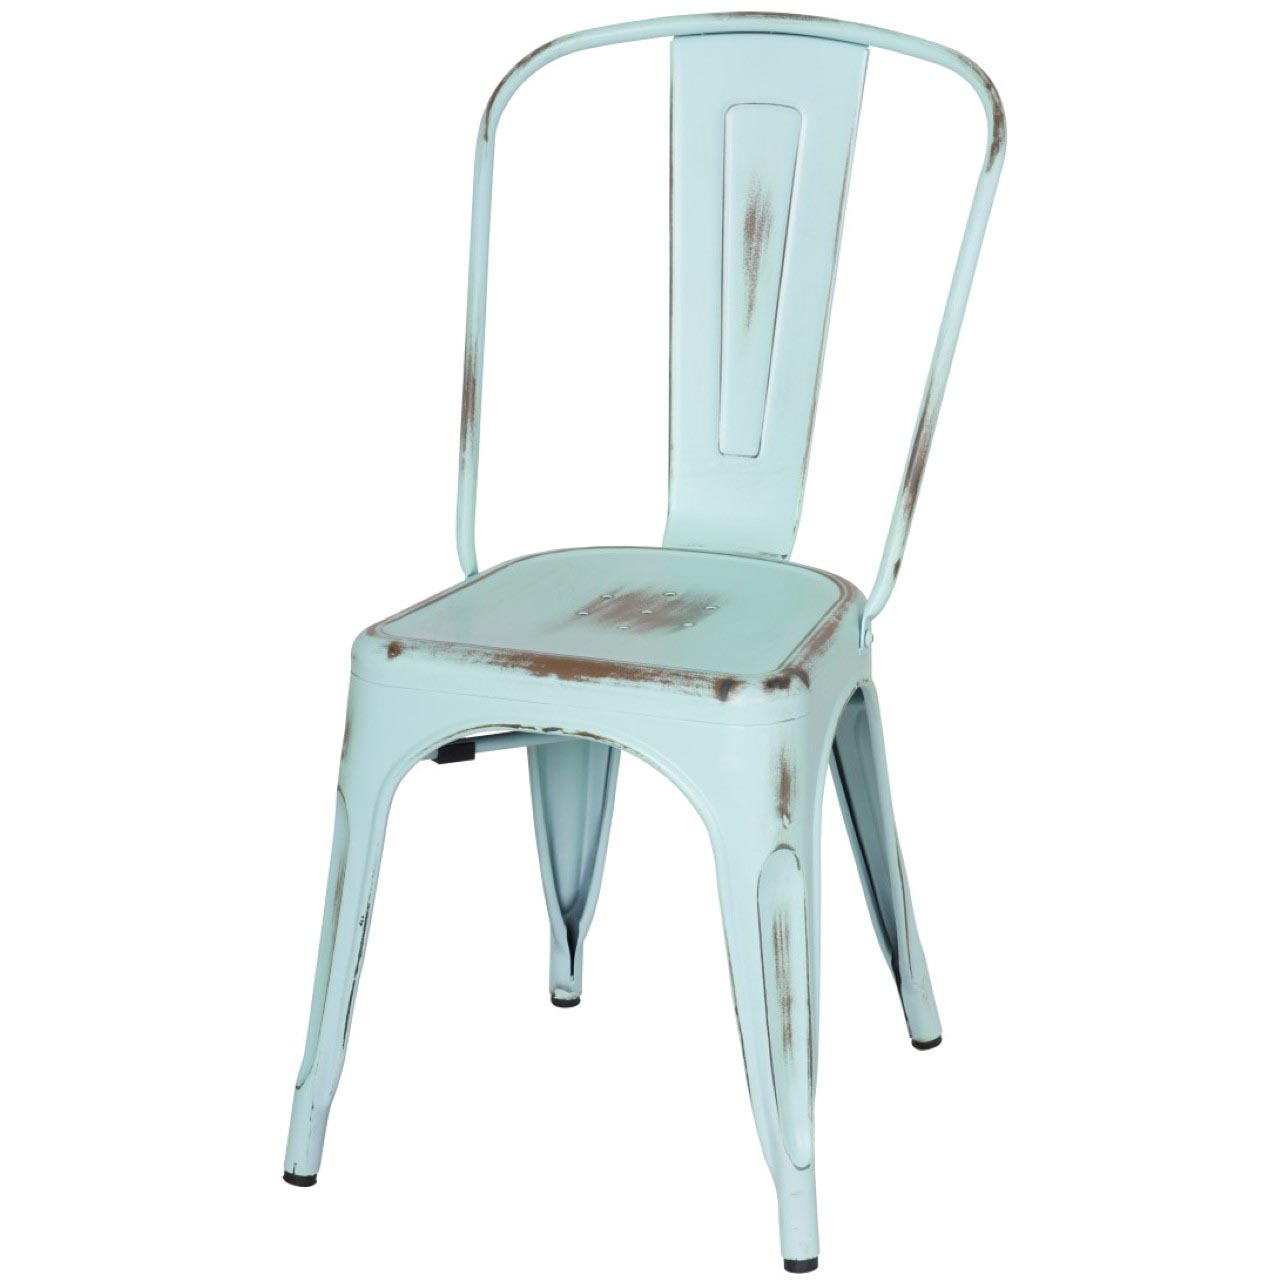 Metal Chair 938233 Dbl Npd Furniture Wholesale Lifestyle Furniture